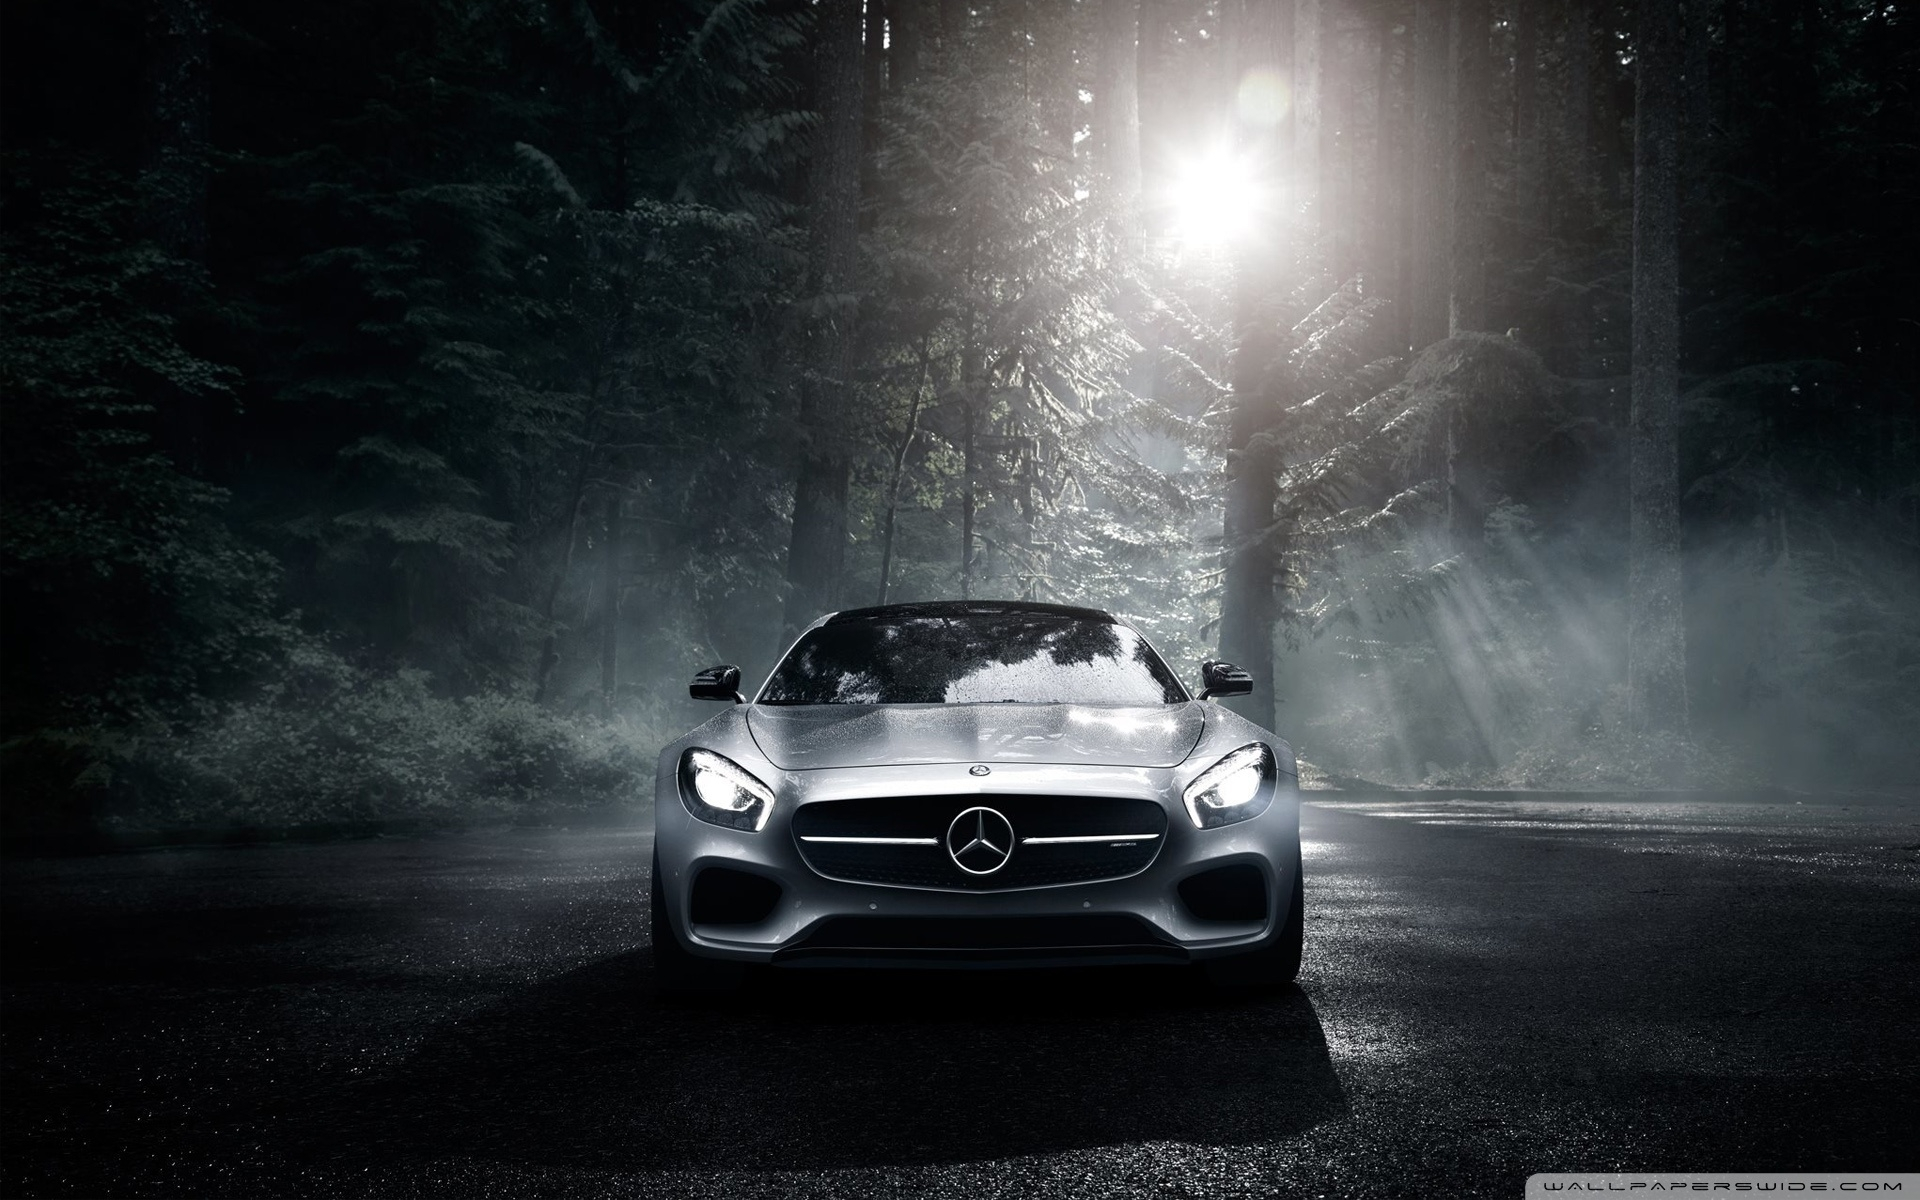 wallpaperswide ❤ mercedes benz hd desktop wallpapers for 4k